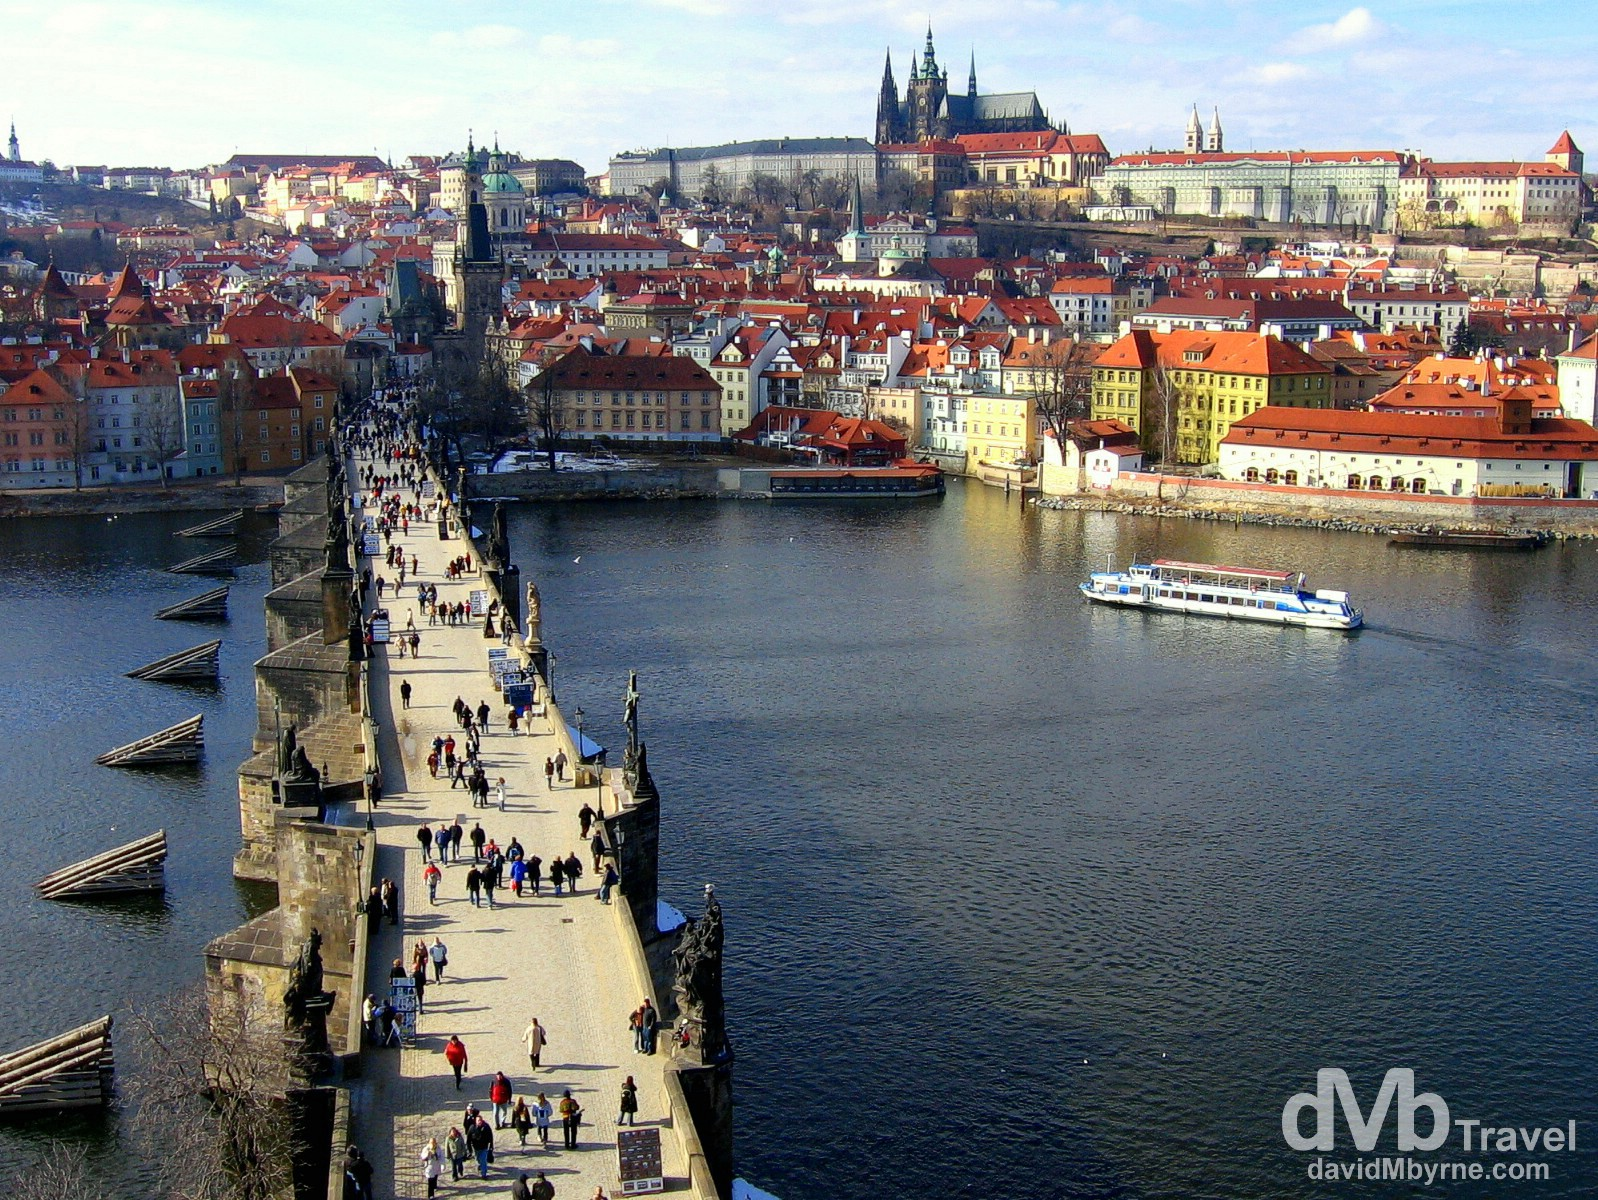 The medieval castle district across the Charles Bridge spanning the Vltava river in Prague, Czech Republic. March 8th 2006